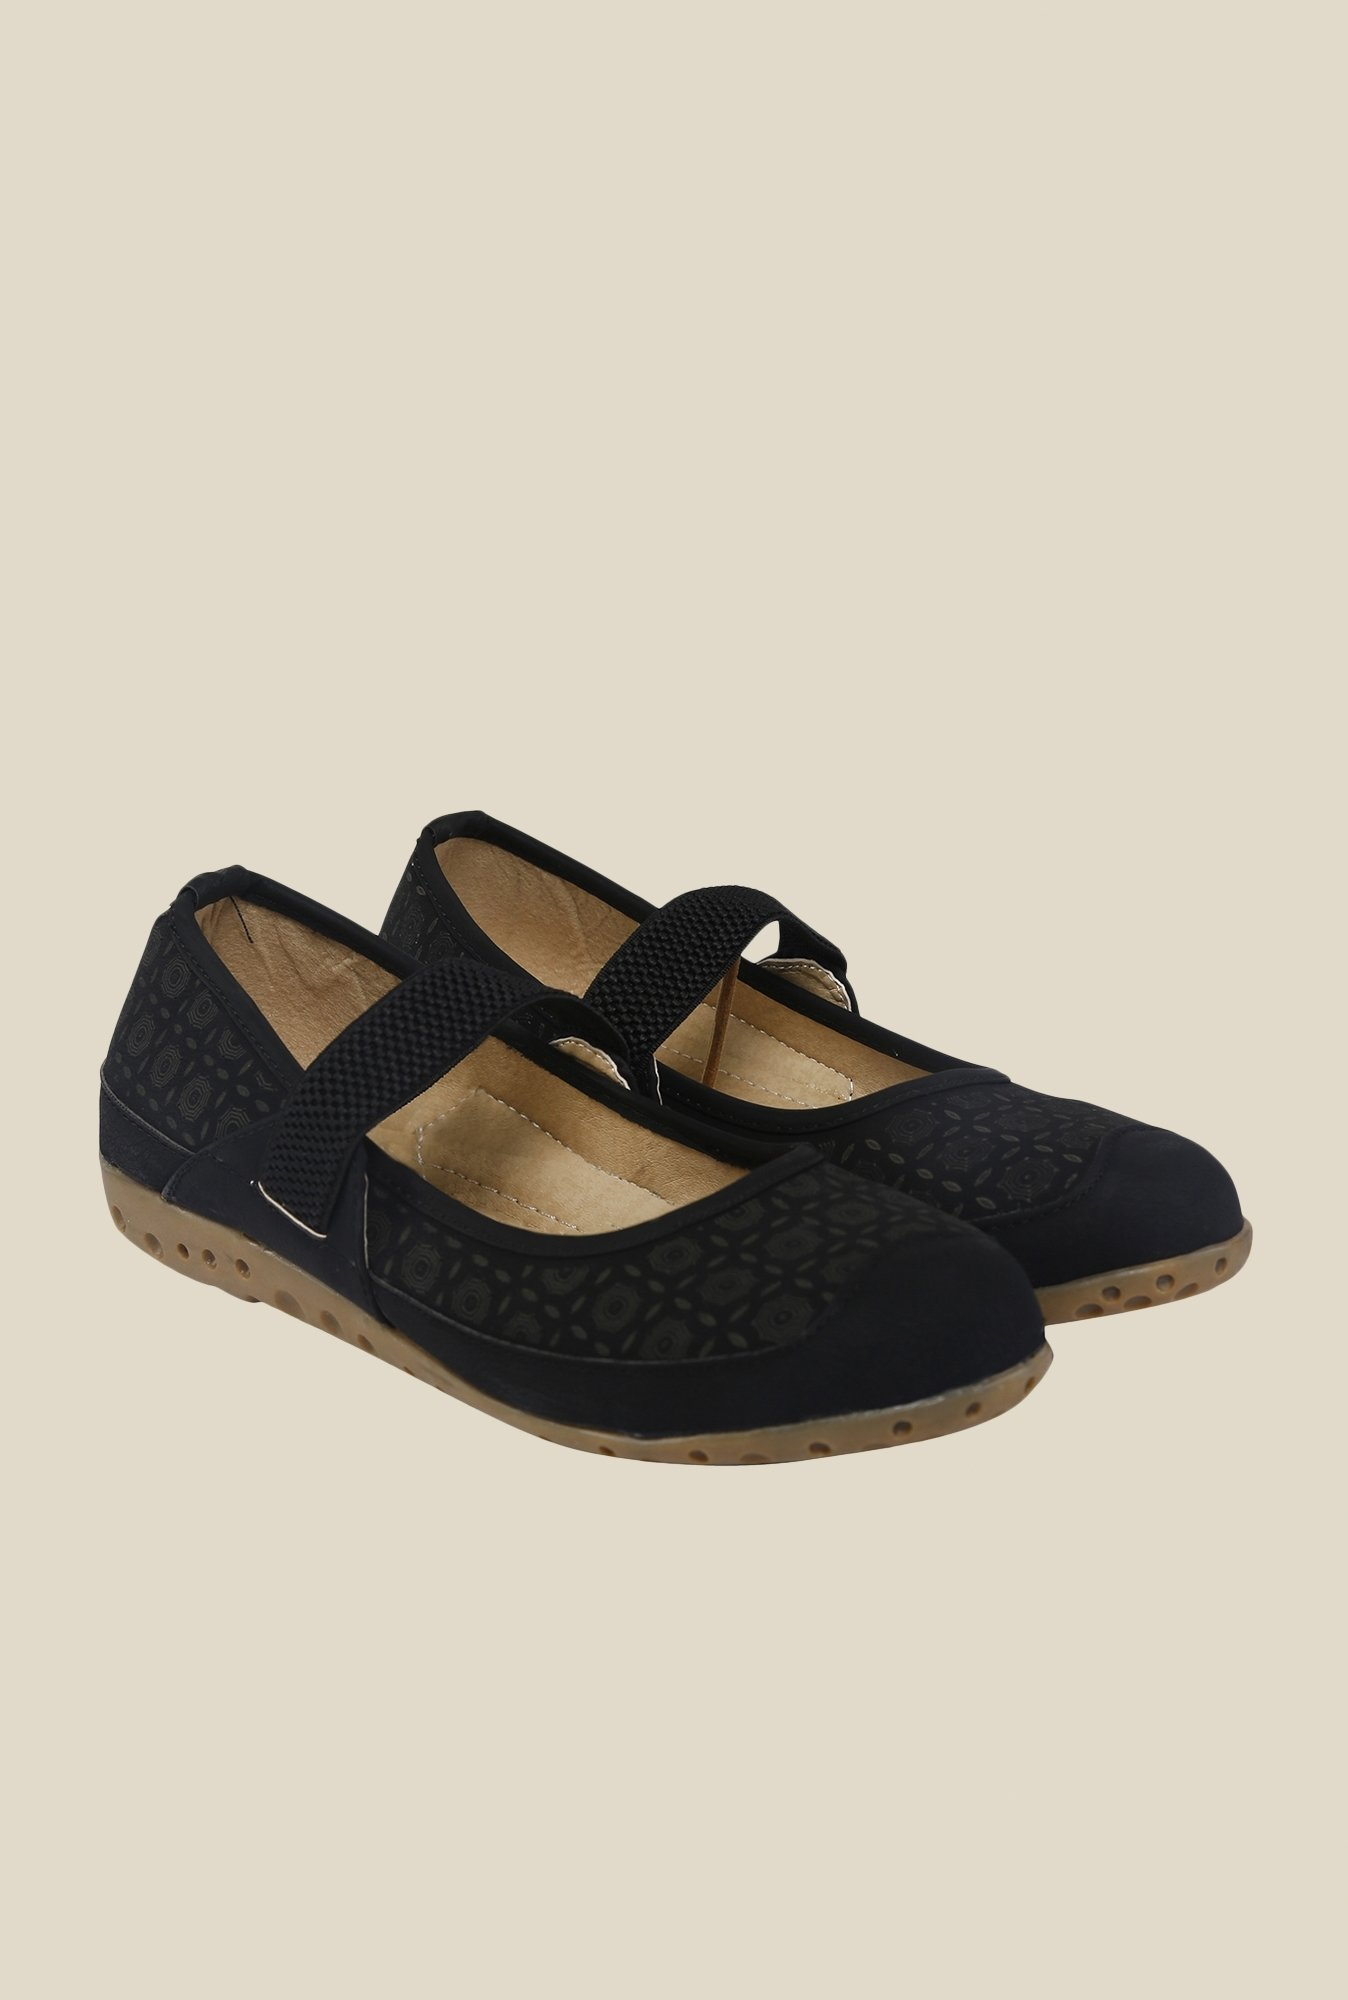 Cocoon Black Mary Jane Shoes